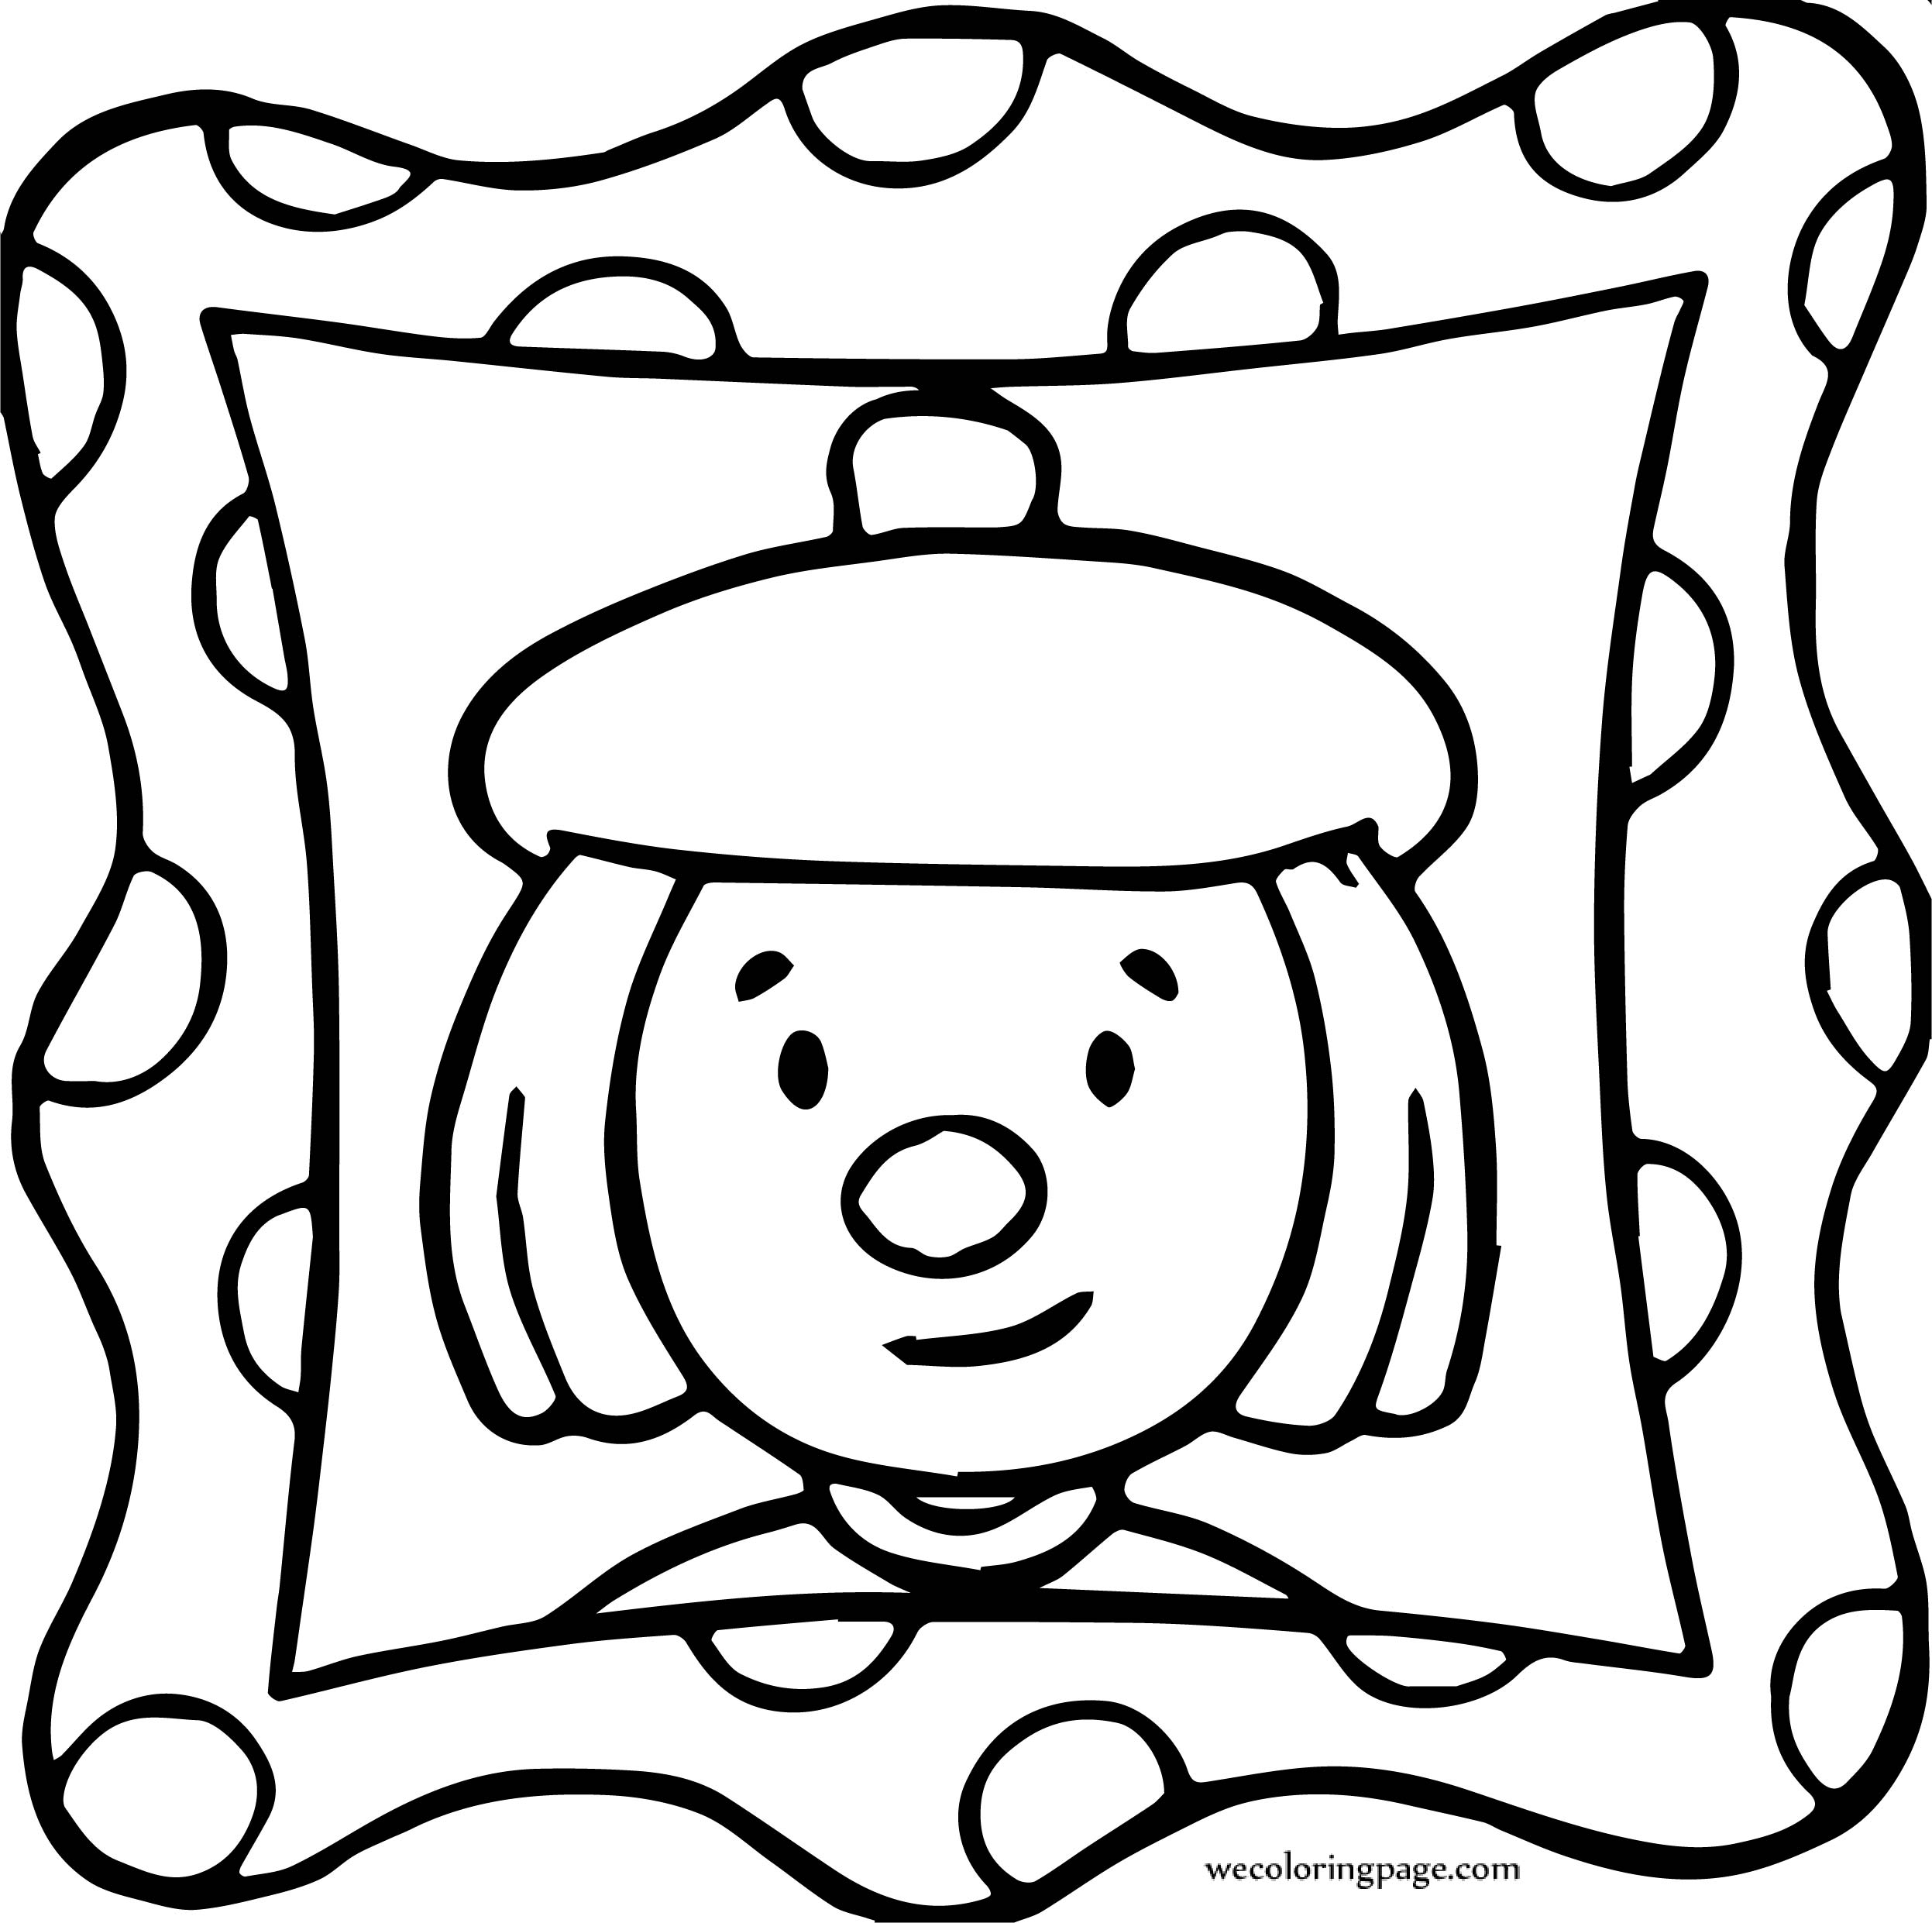 JoJo Circus Picture Frame Coloring Page | Wecoloringpage.com